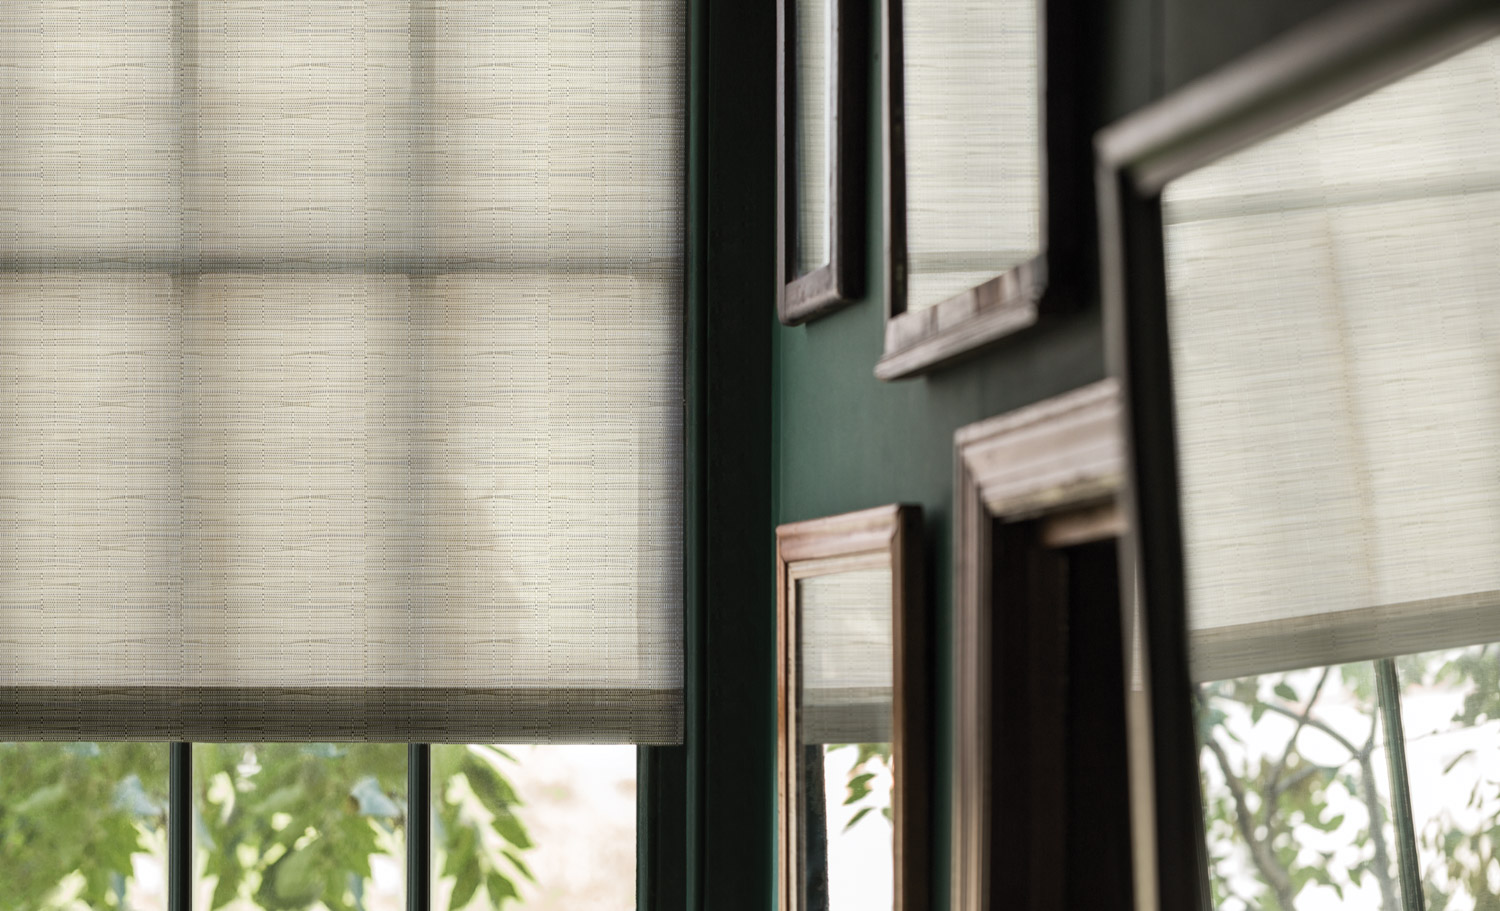 Designer Sandy Chilewich produced a line of indoor plant friendly window treatments.